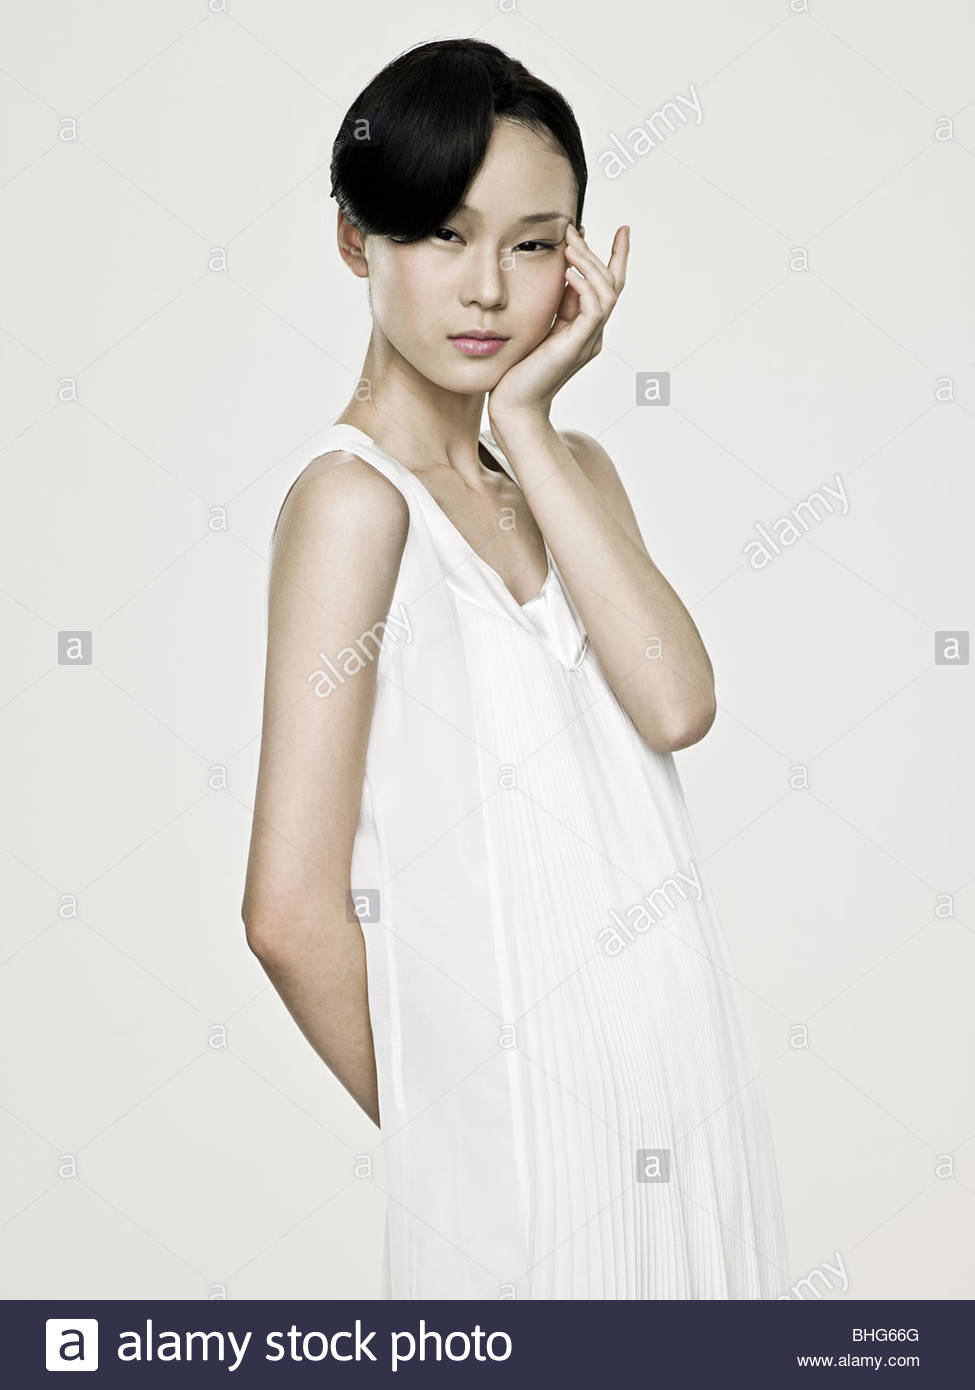 Young Asian woman touching her eye Photo Stock